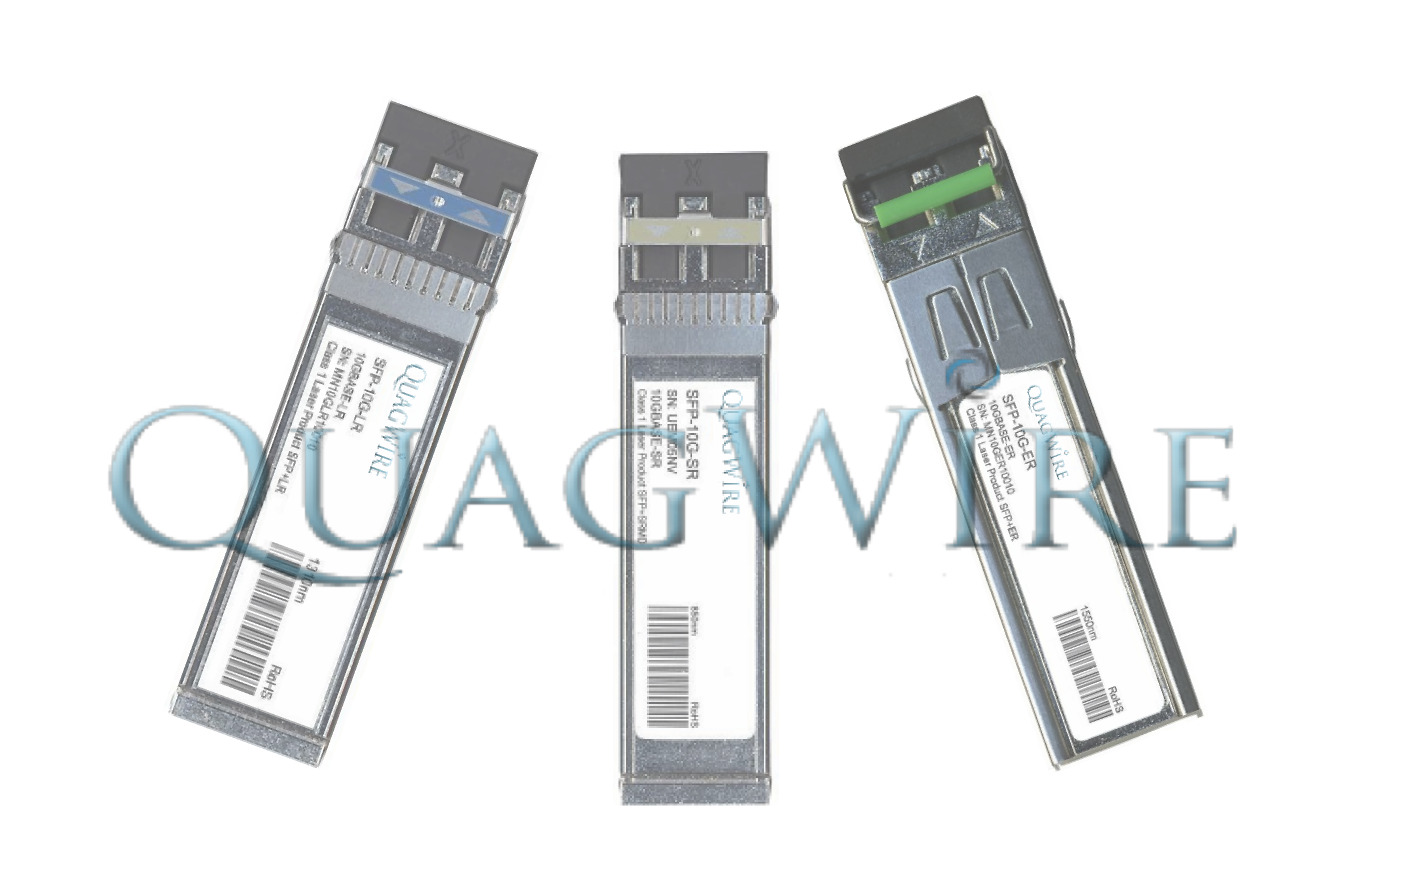 33211-100 – Brocade Compatible SFP Transceiver